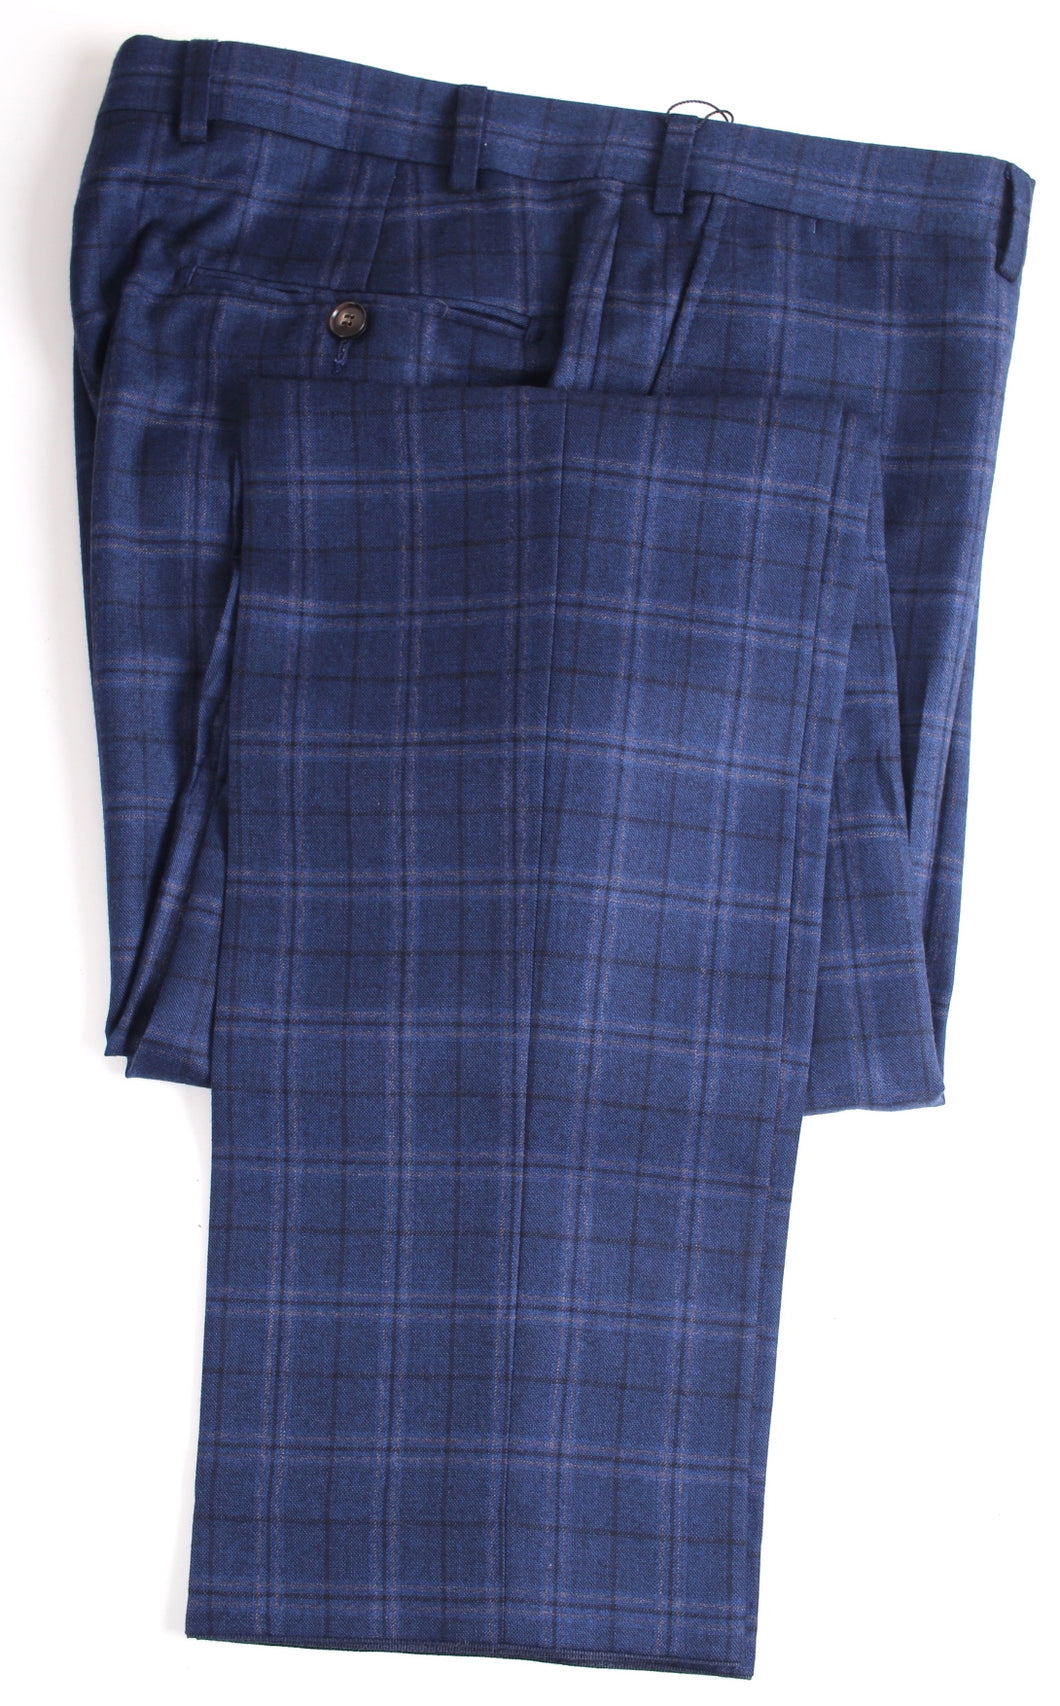 New Suitsupply Brescia Blue Check Wool and Cashmere Trousers - Size 40R (35.4 inch)